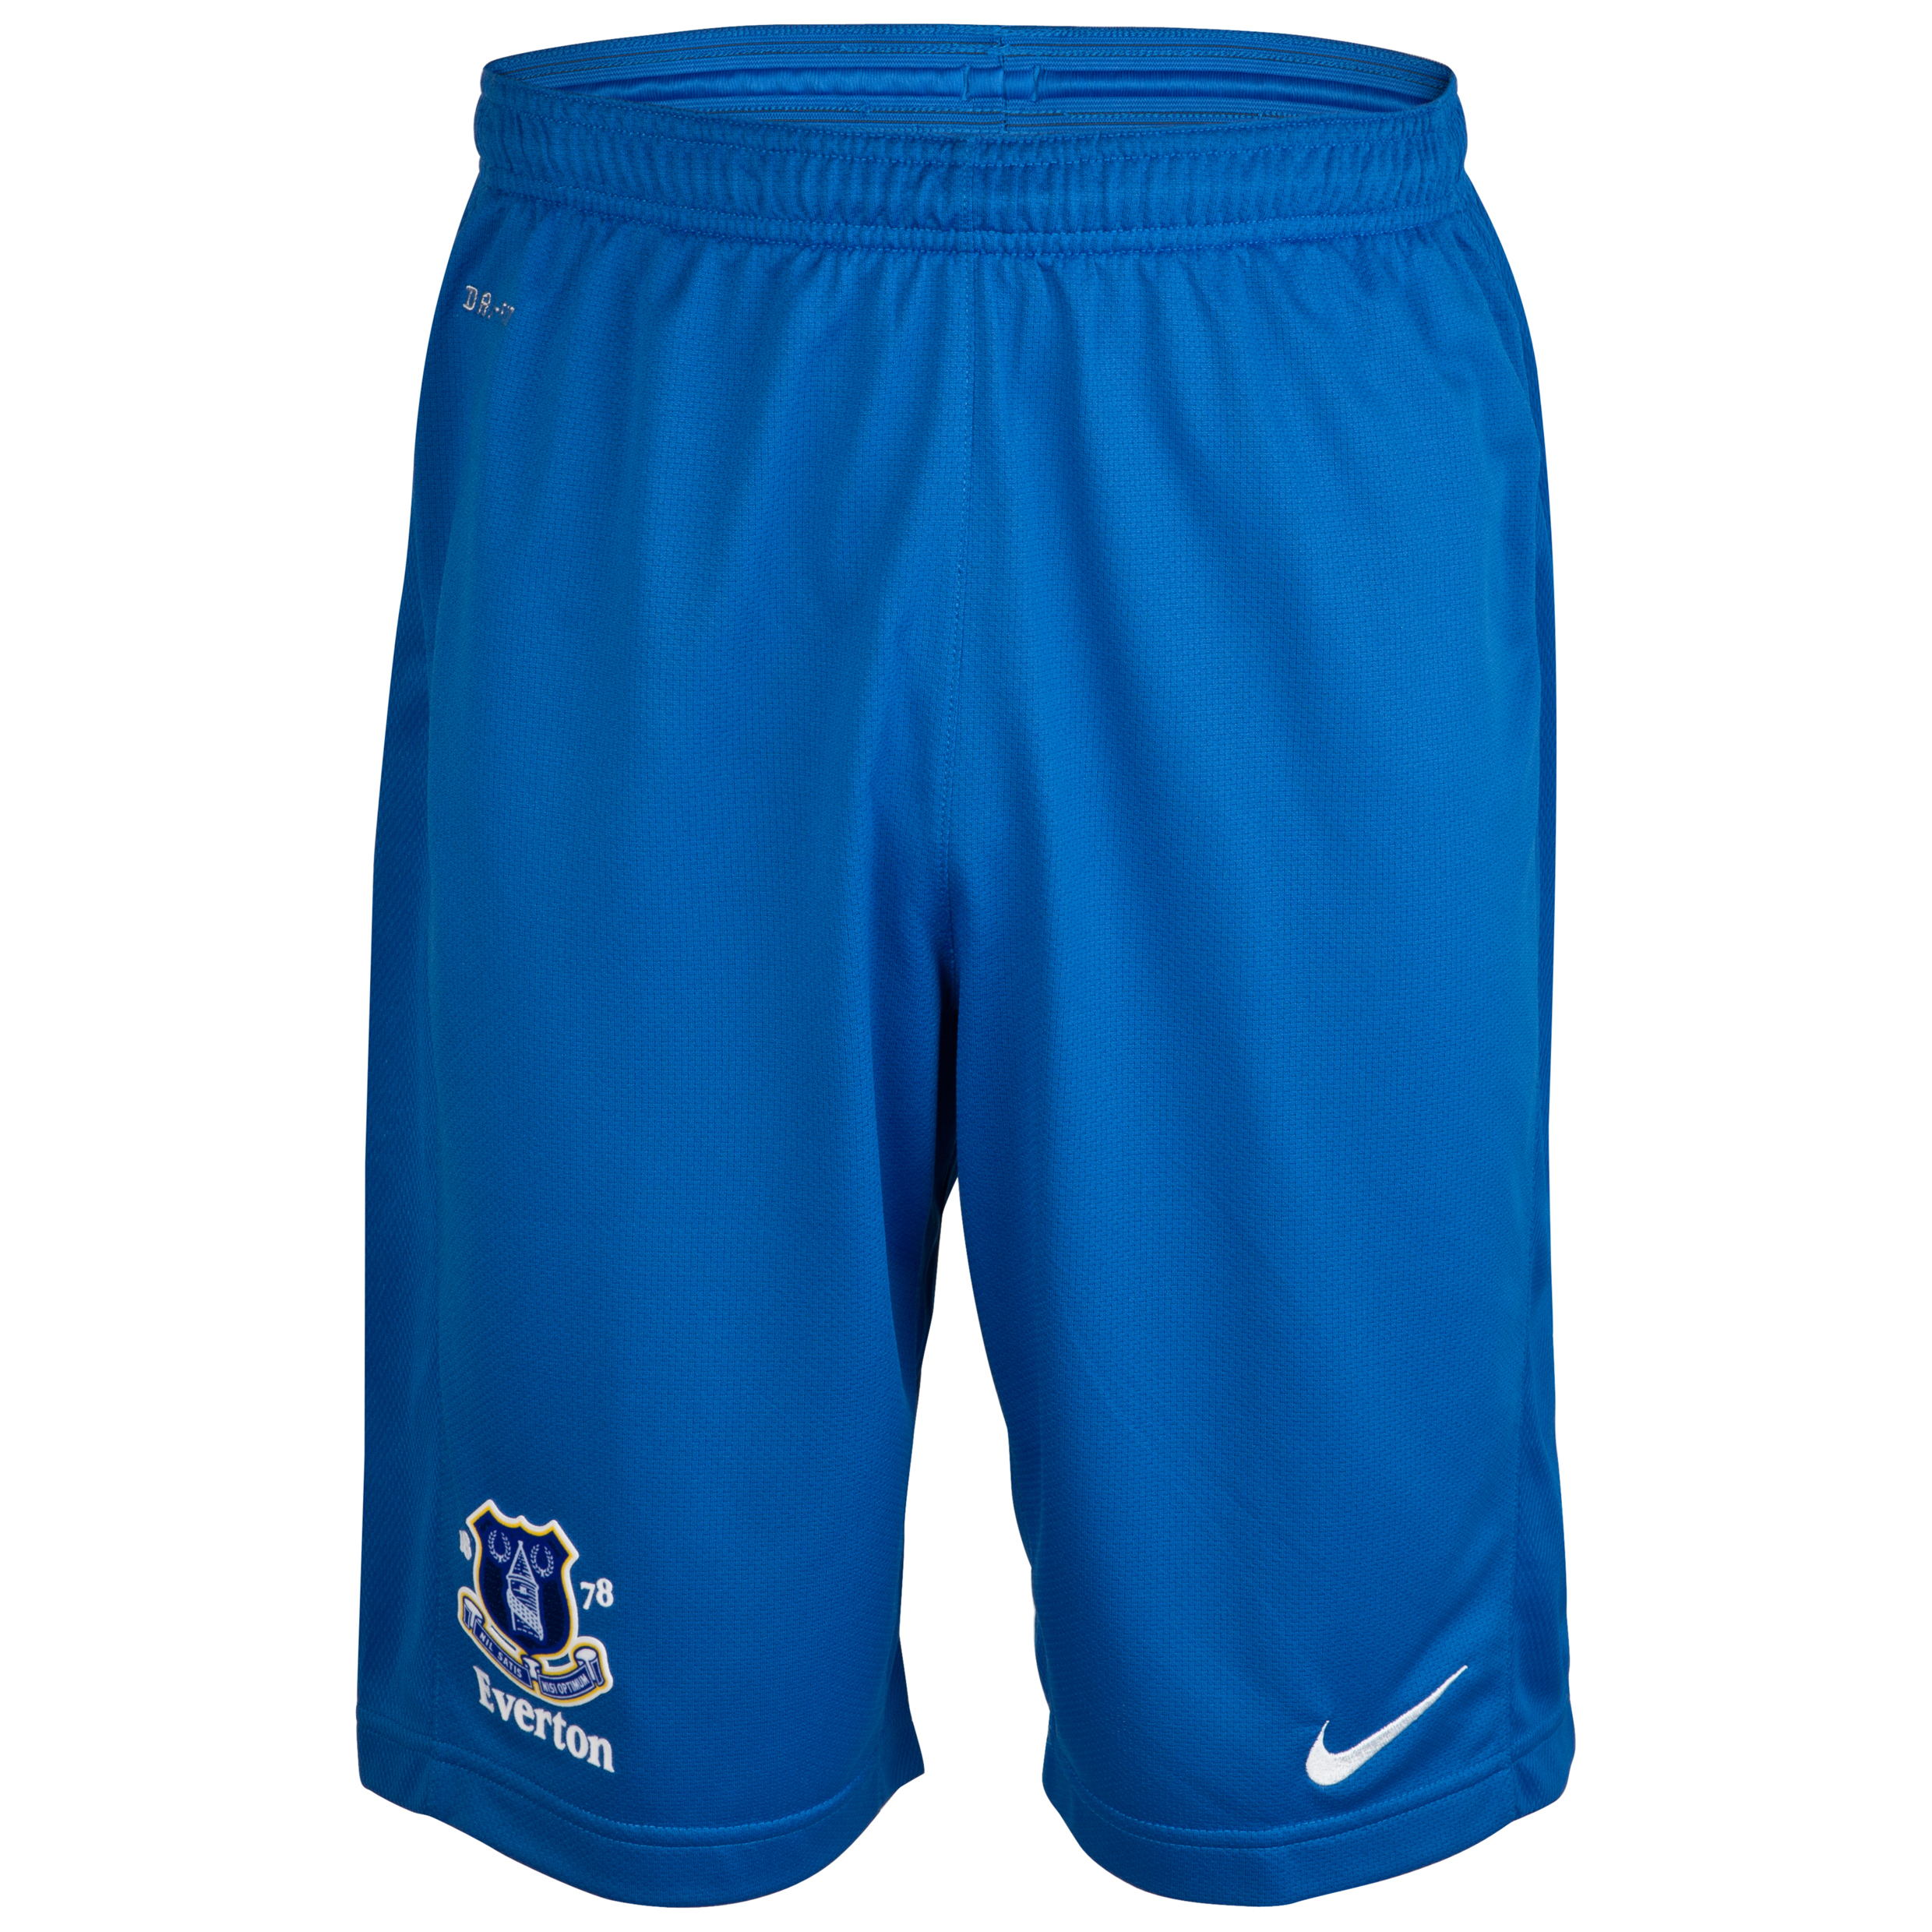 Everton Longer Knit Short - Junior - Royal Blue/White